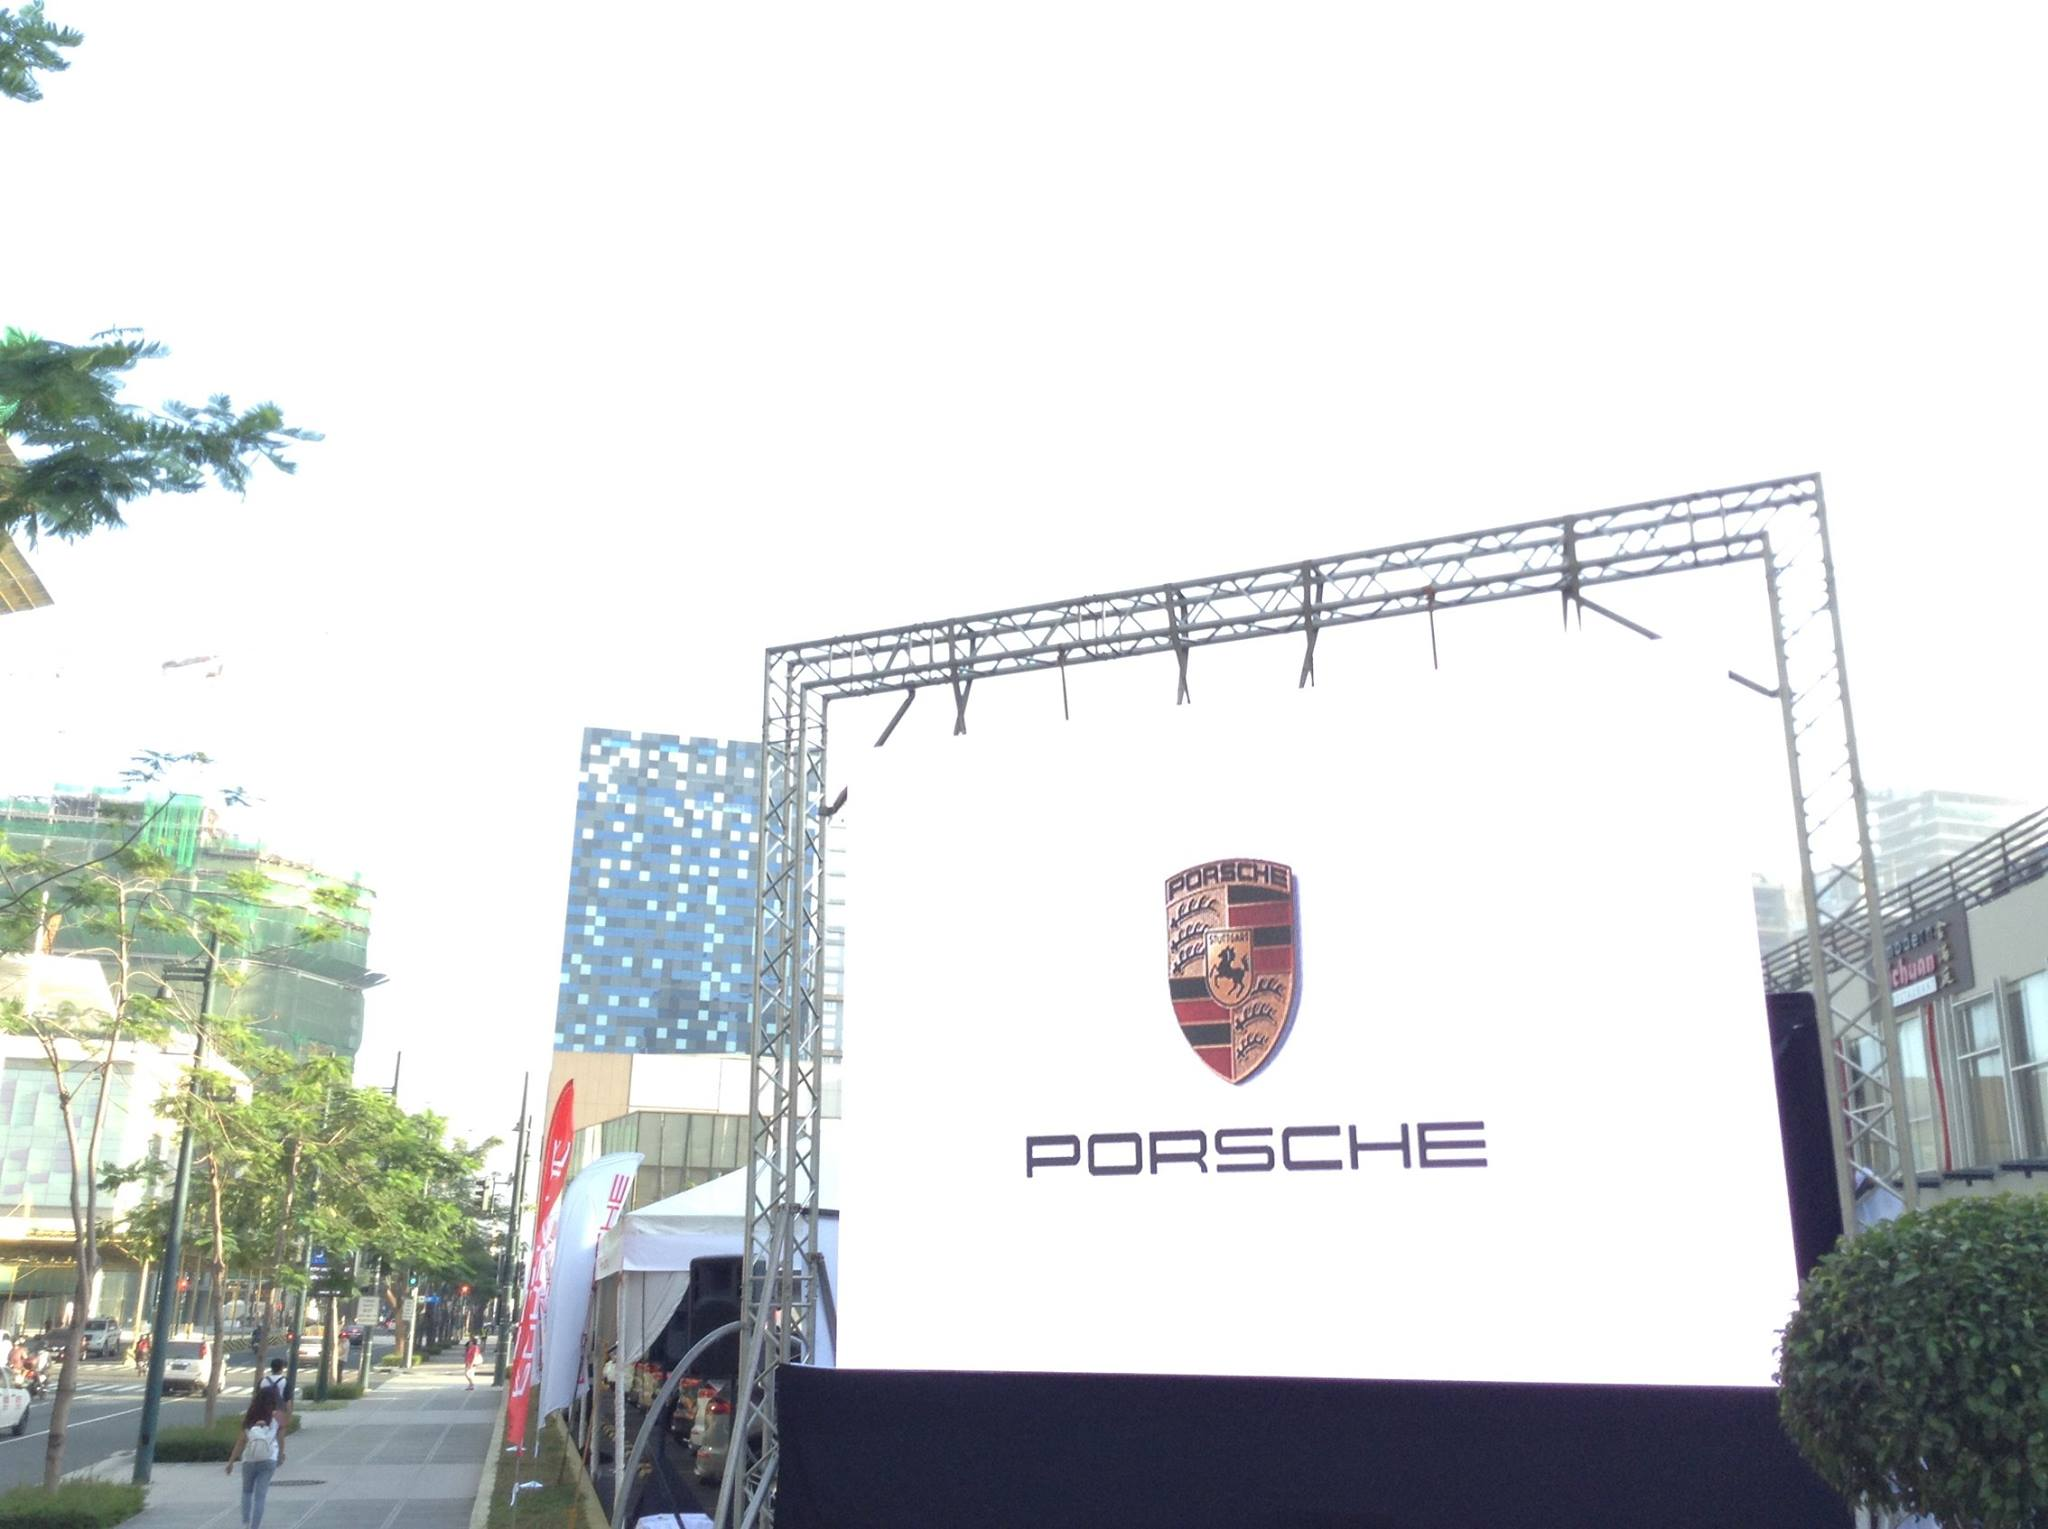 Hydro-6 on Porsche Promotion